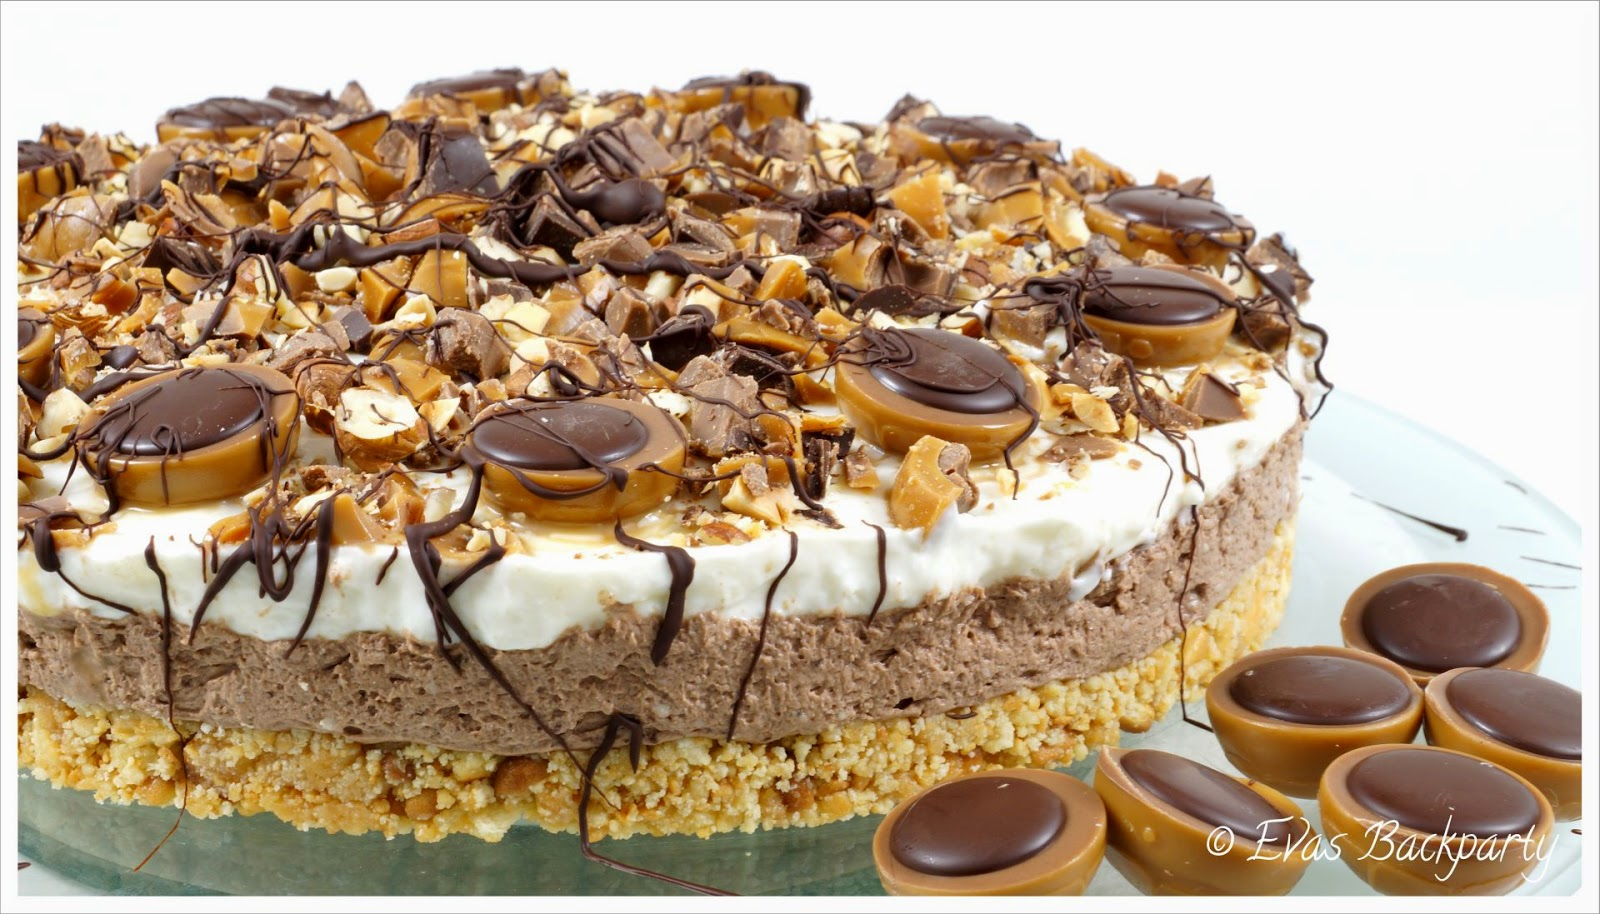 Kinderschokolade Riegel Kuchen Evas Backparty Cremige Toffifee Torte Ohne Zu Backen